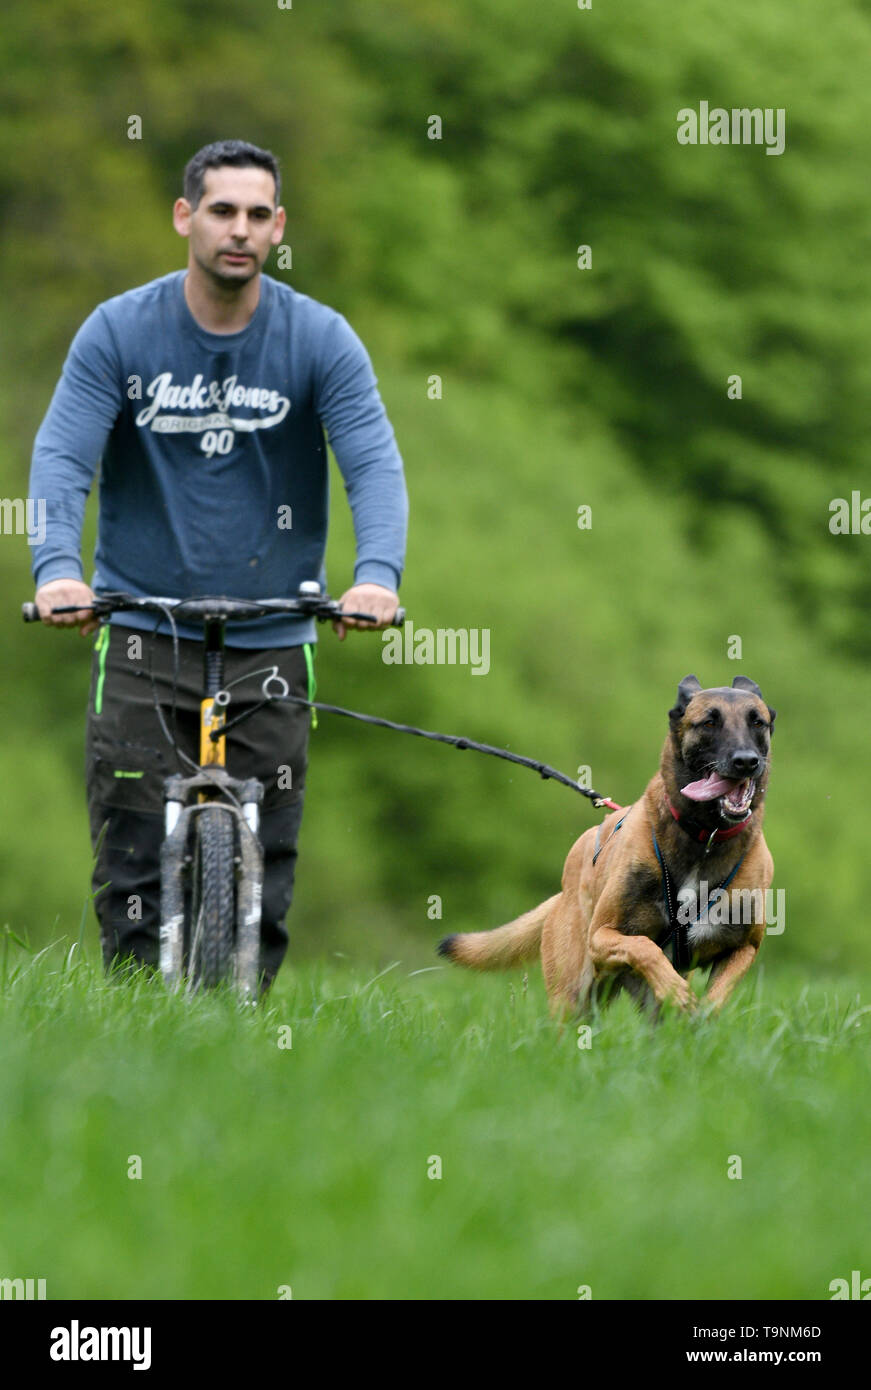 Trier, Germany. 10th May, 2019. Mario Reitz lets himself be pulled on a 'Dogscooter' by his Belgian shepherd Kira. At speeds of up to 40 kilometres per hour, the team races along field paths or meadows. Credit: Harald Tittel/dpa/Alamy Live News - Stock Image